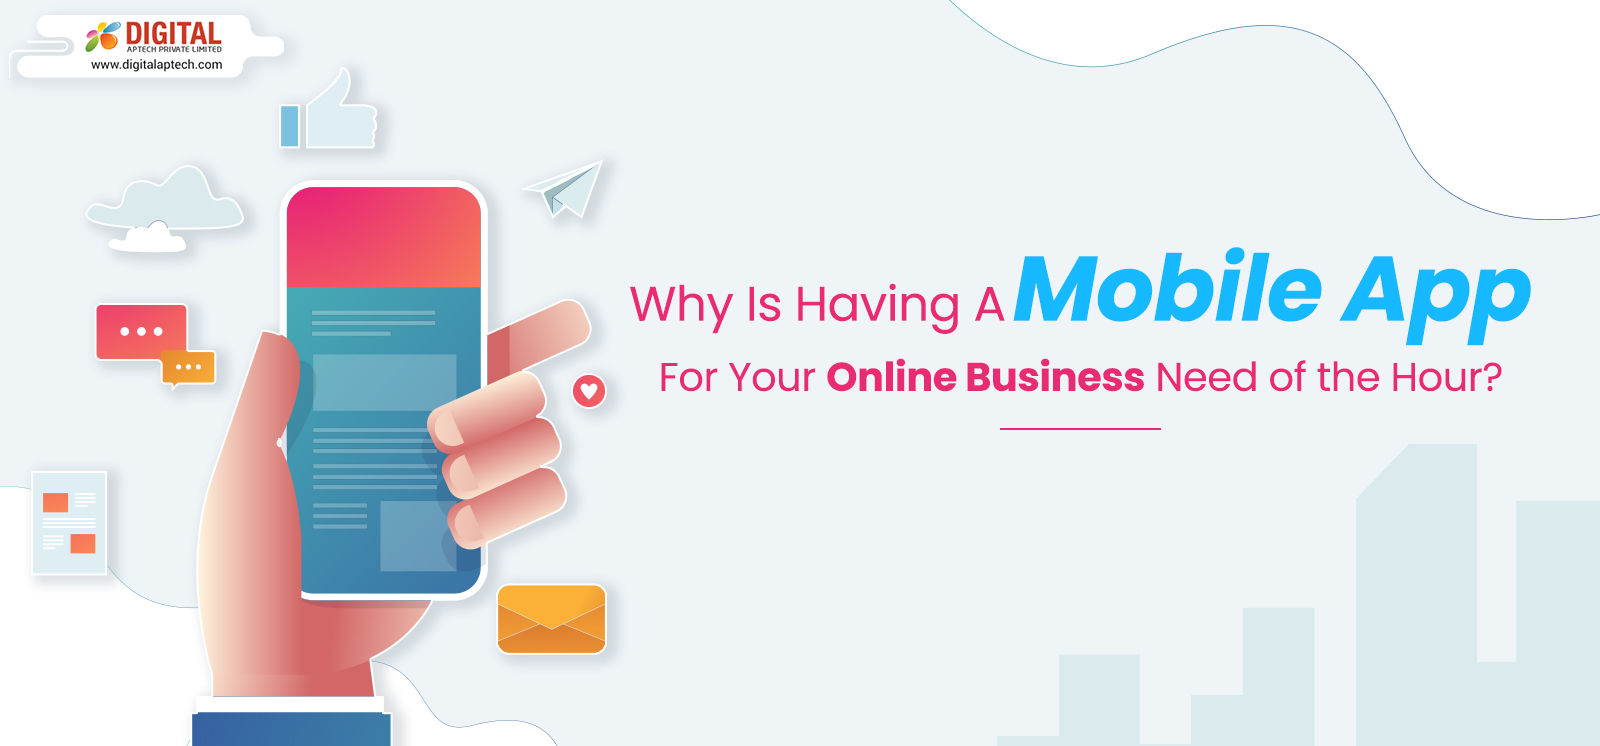 Why Is Having A Mobile App For Your Online Business Need of the Hour?